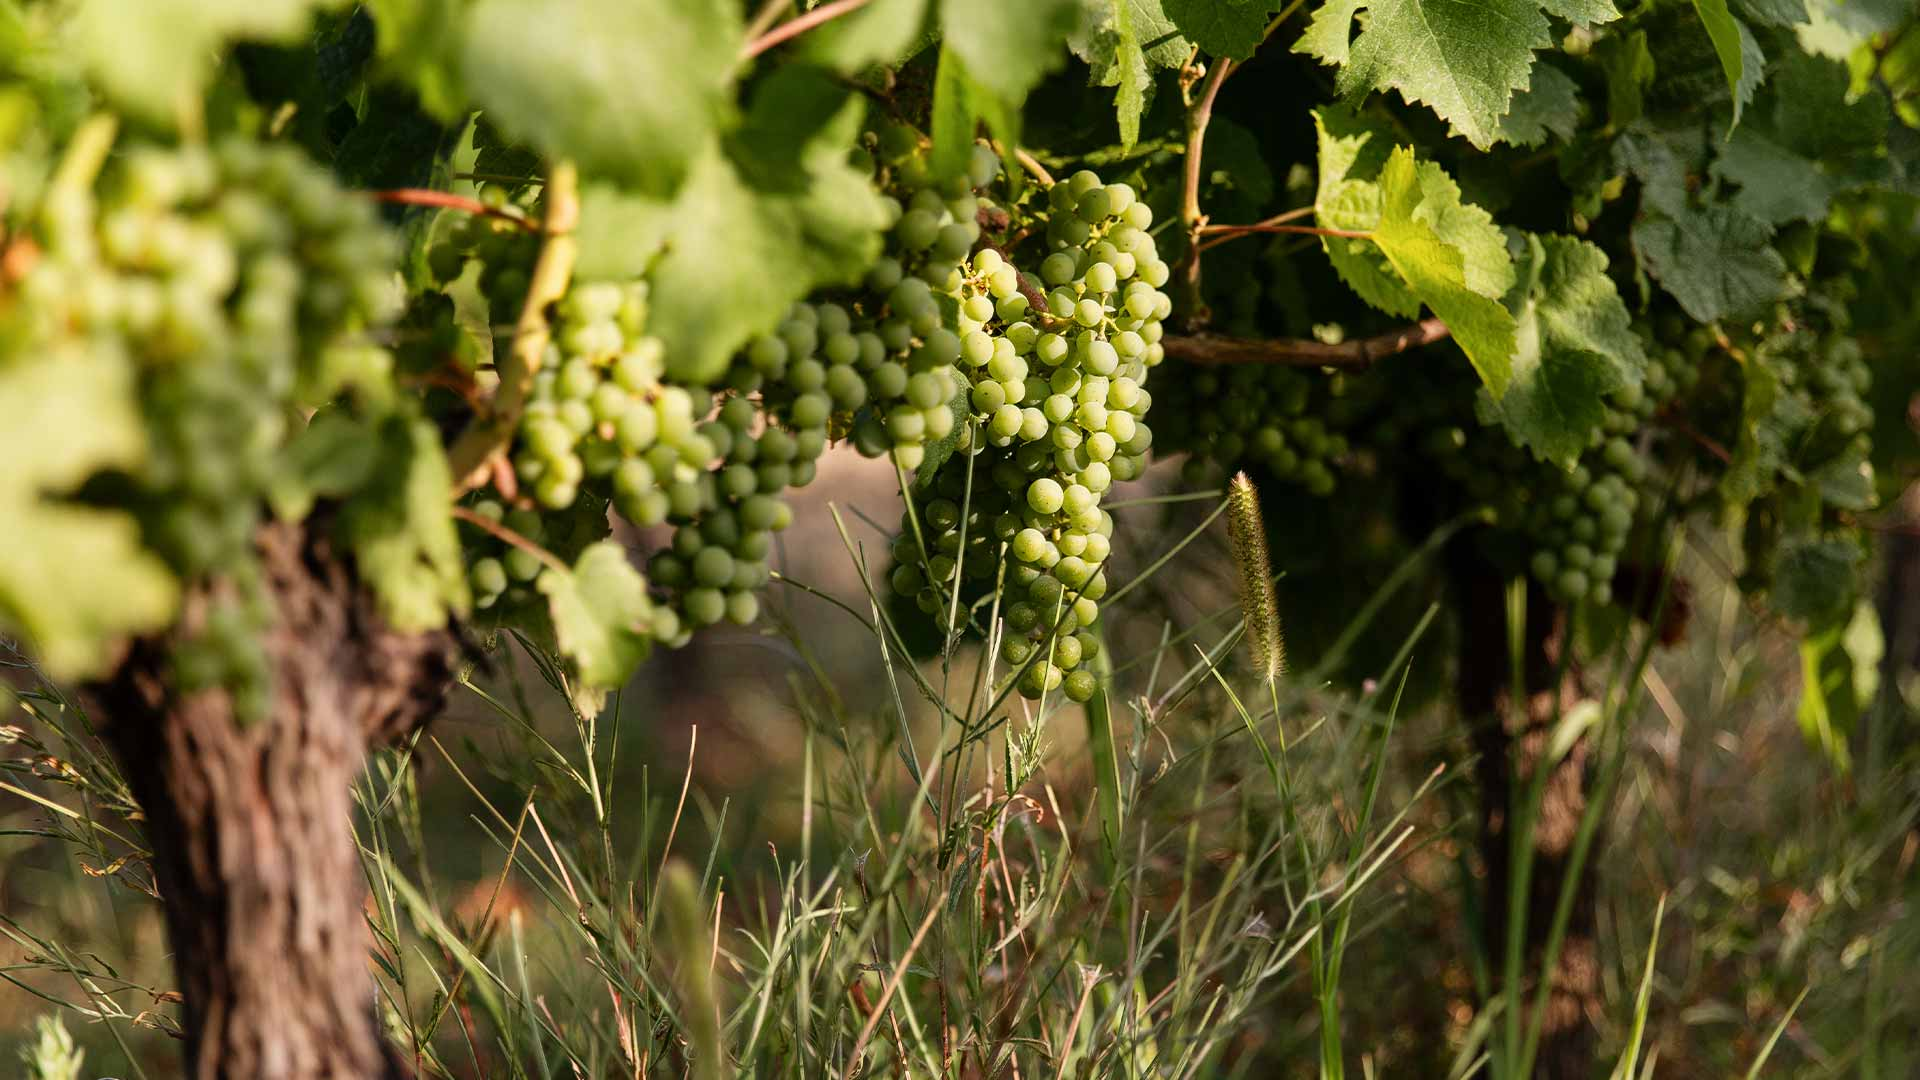 Grapes on wine plant